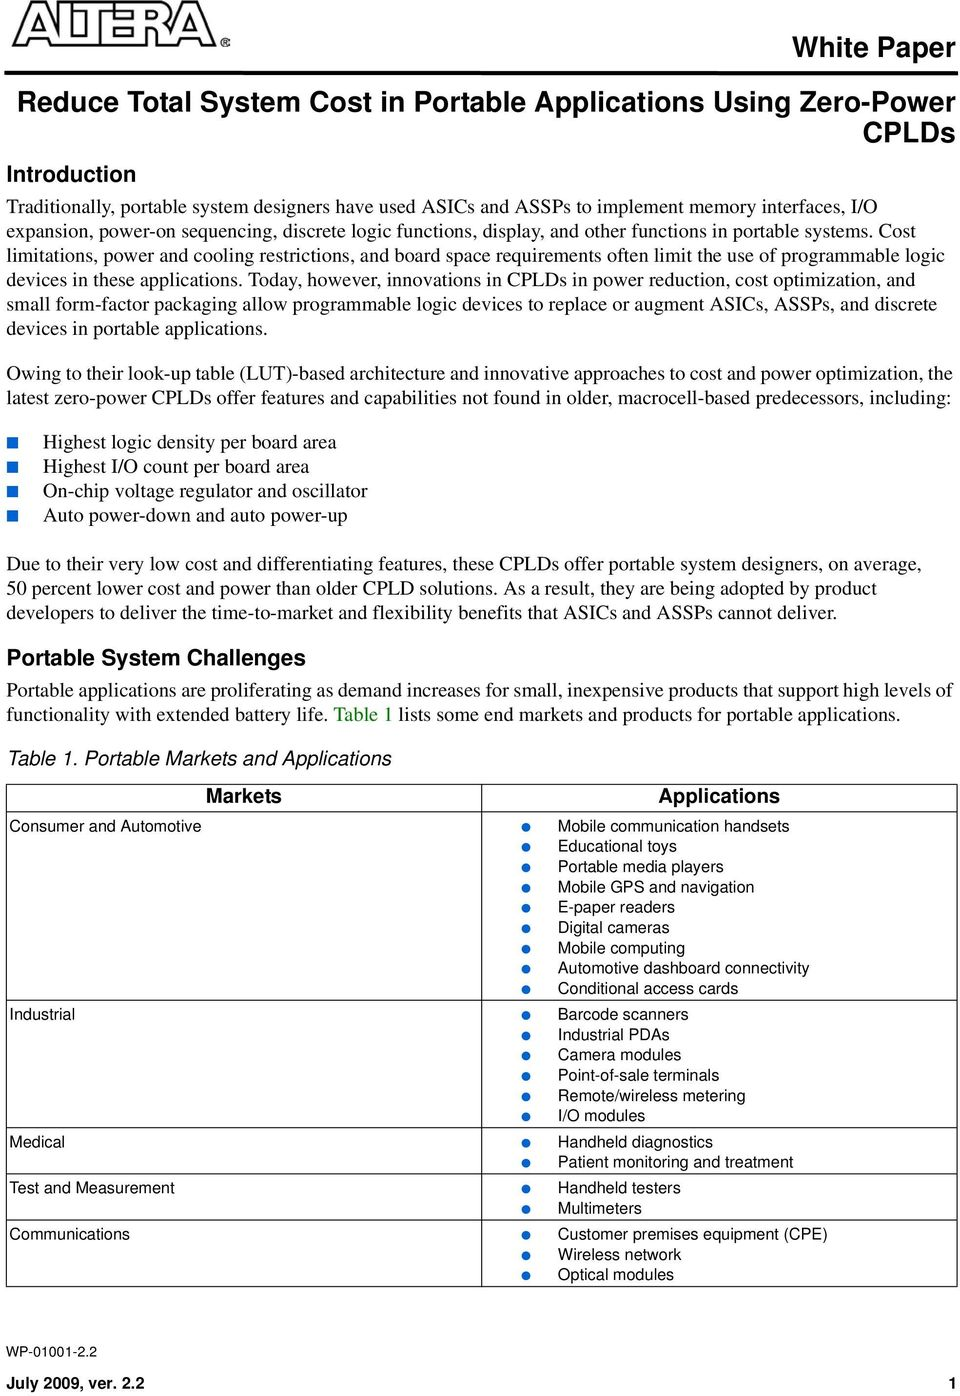 White Paper Reduce Total System Cost In Portable Applications Using Zero Power Cplds Pdf Free Download